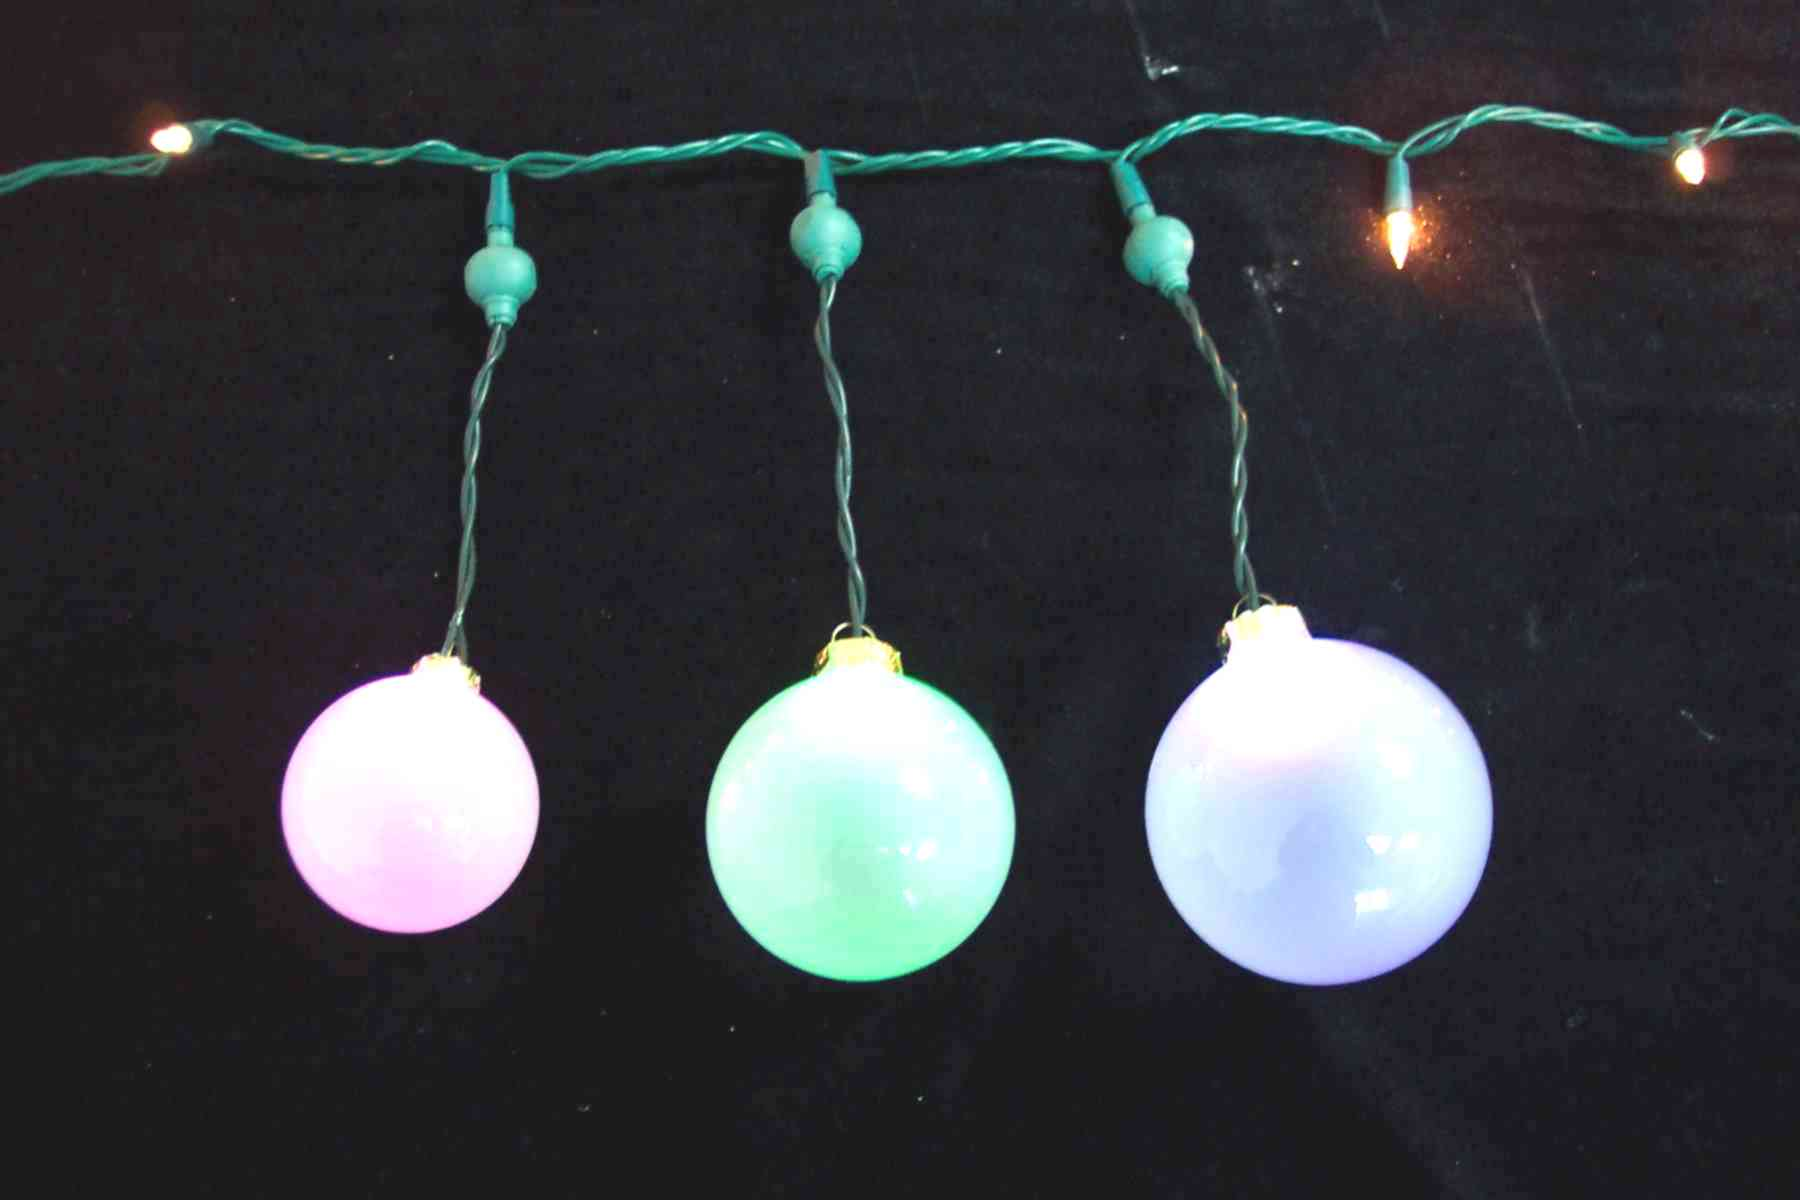 LED Changing Colors or Twinkling Glass / Plastic Ball Lights